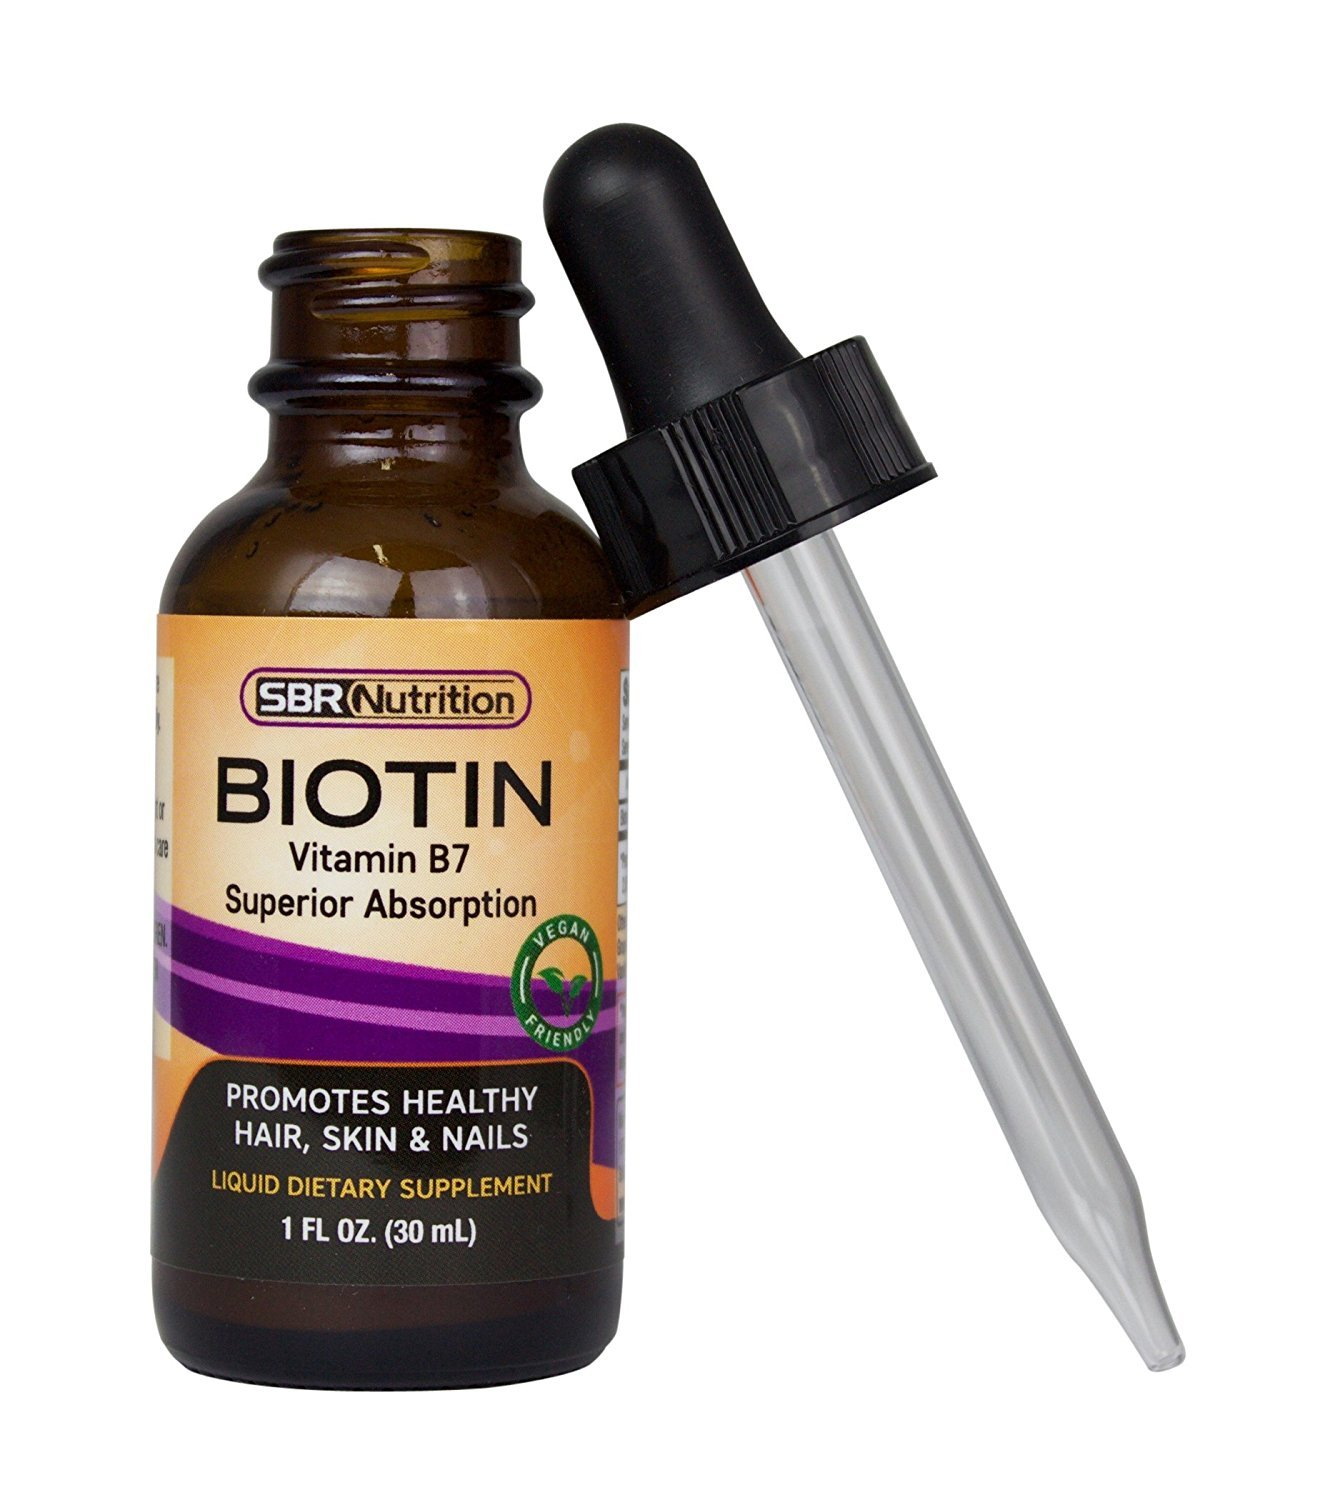 Max Absorption Biotin Liquid Drops, 5000mcg Of Biotin Per Serving, 60 Serving, No Artificial Preservatives, Vegan Friendly, Supports Healthy Hair Growth, Strong Nails And Glowing Skin, Made In Usa by Sbr Nutrition